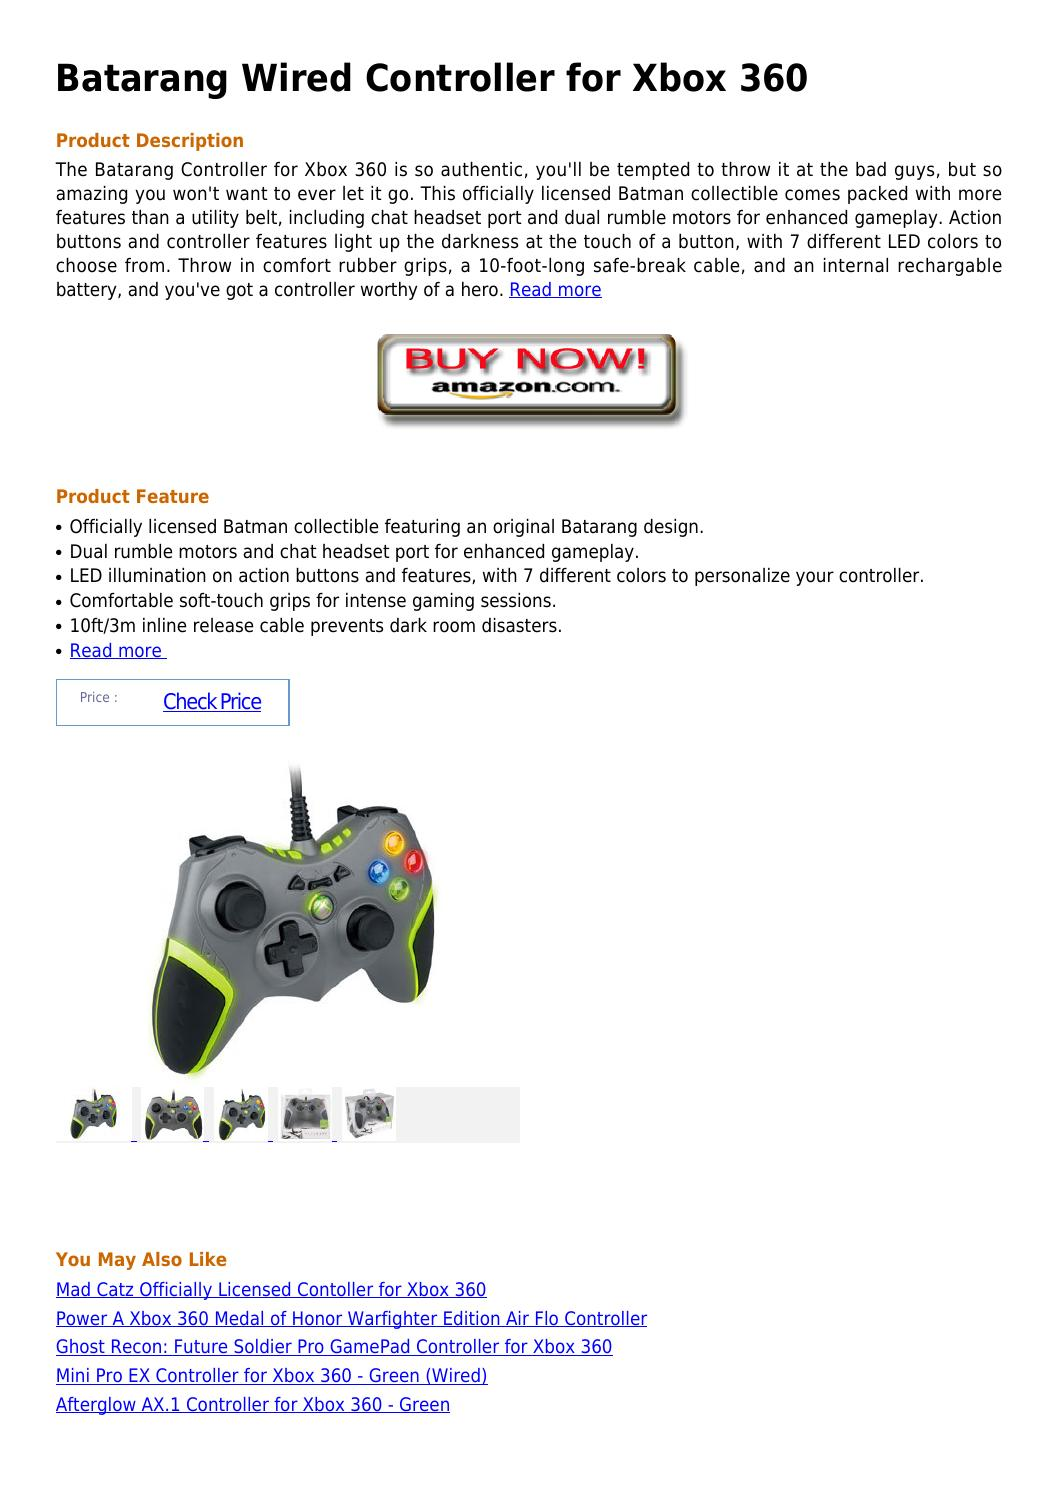 Batarang wired controller for xbox 360 by JMmandy wilsoncrew